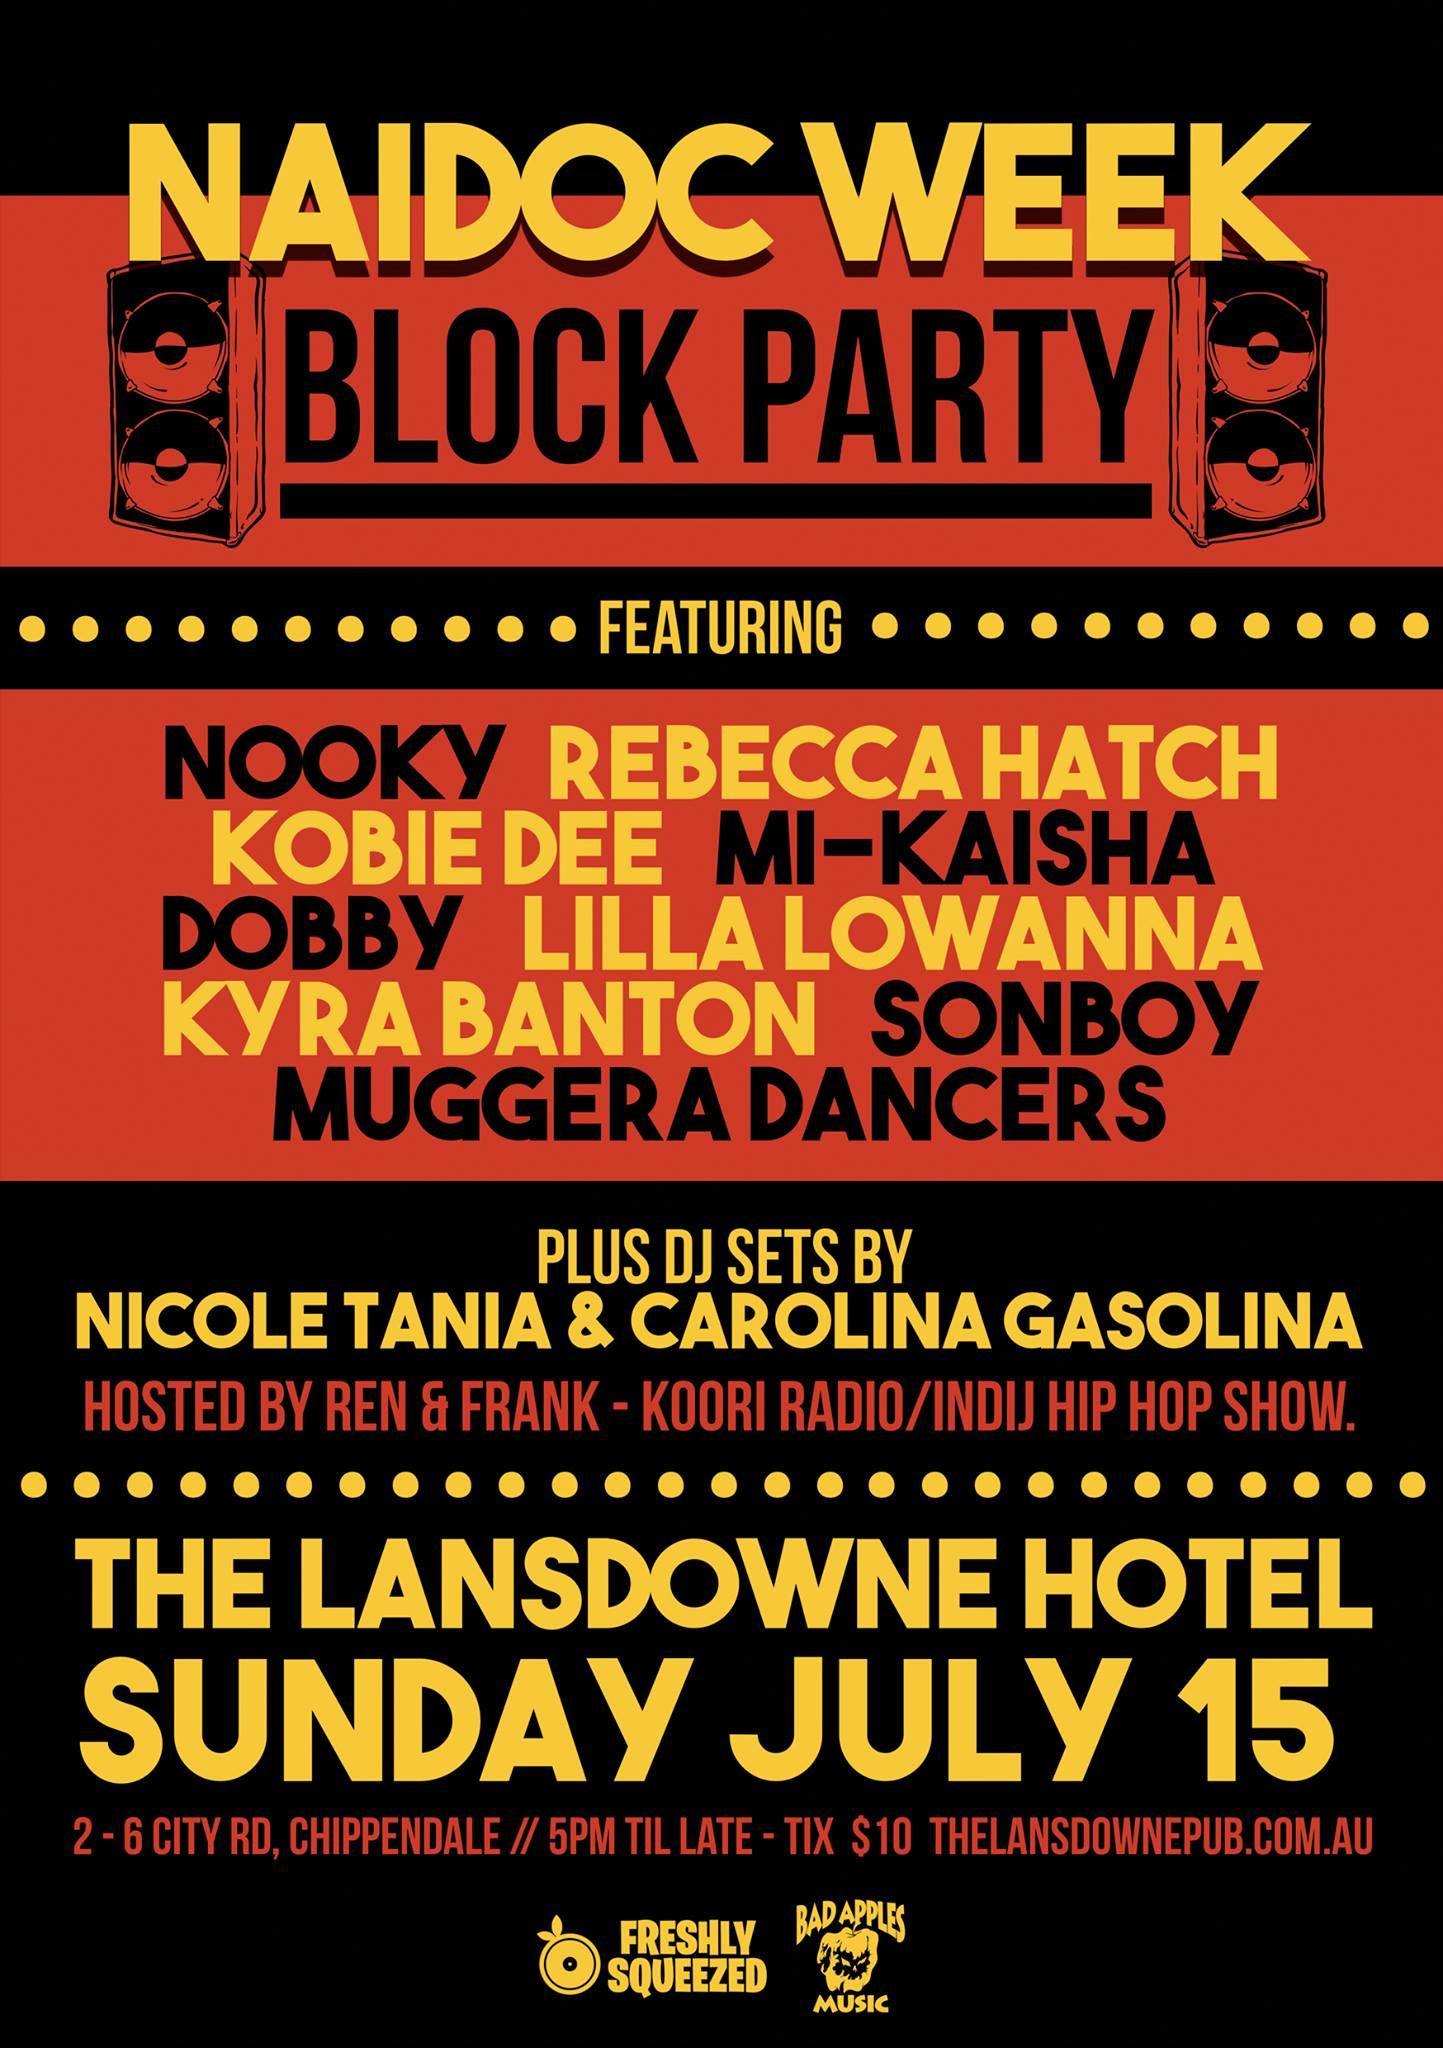 NAIDOC WEEK BLOCK PARTY @ THE LANSDOWNE, SYDNEY